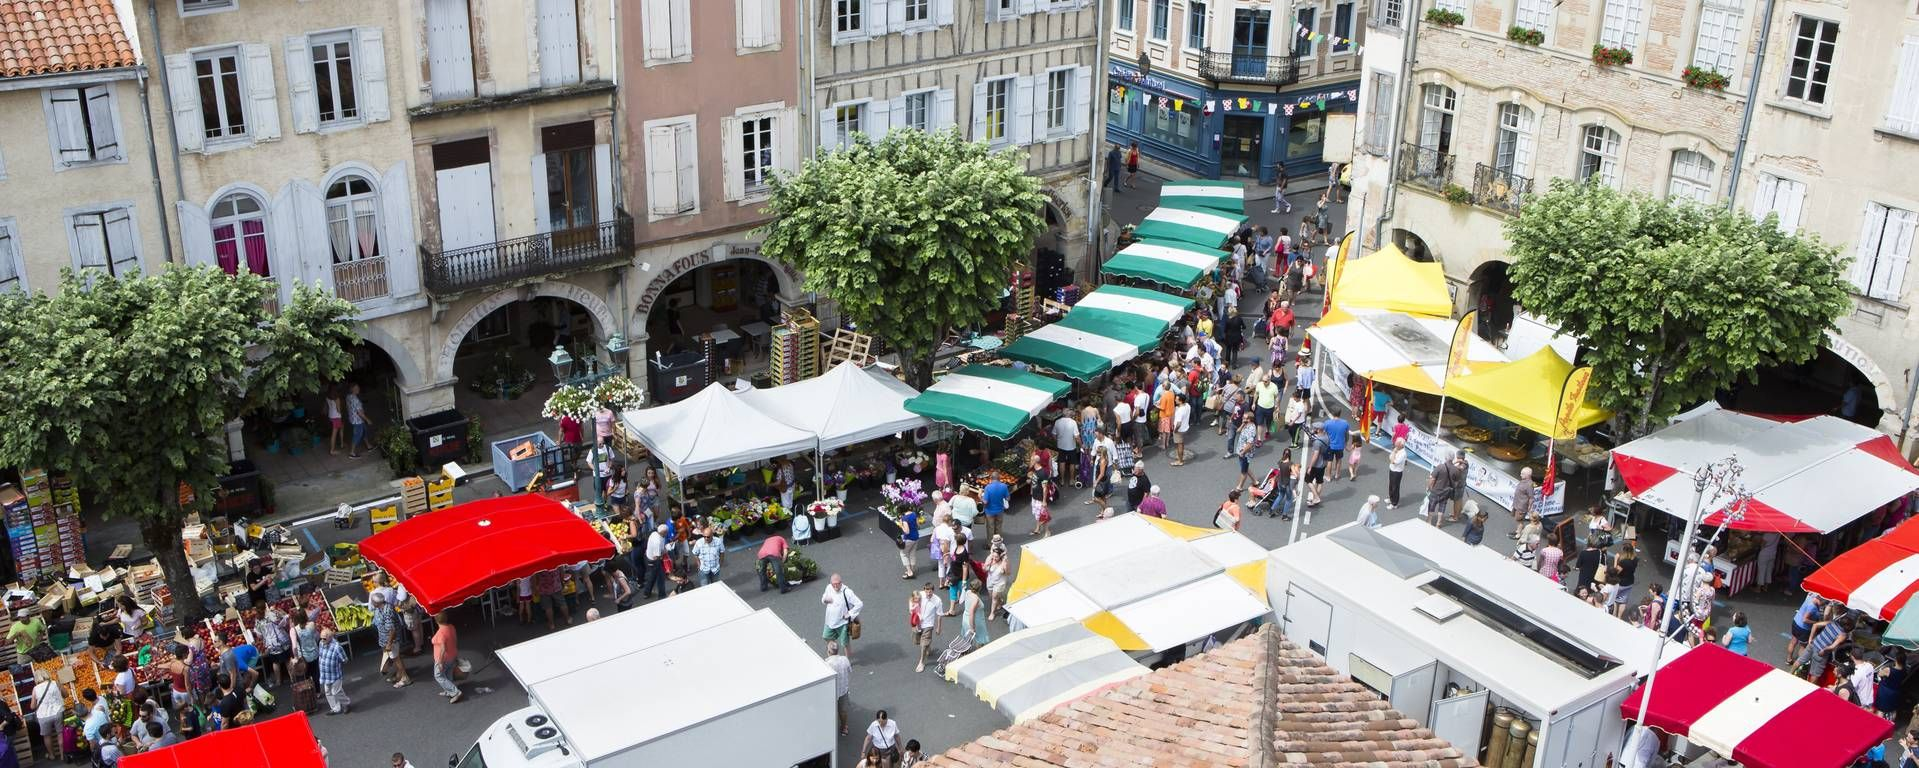 Markets And Flavours Of The South West Traditional Market